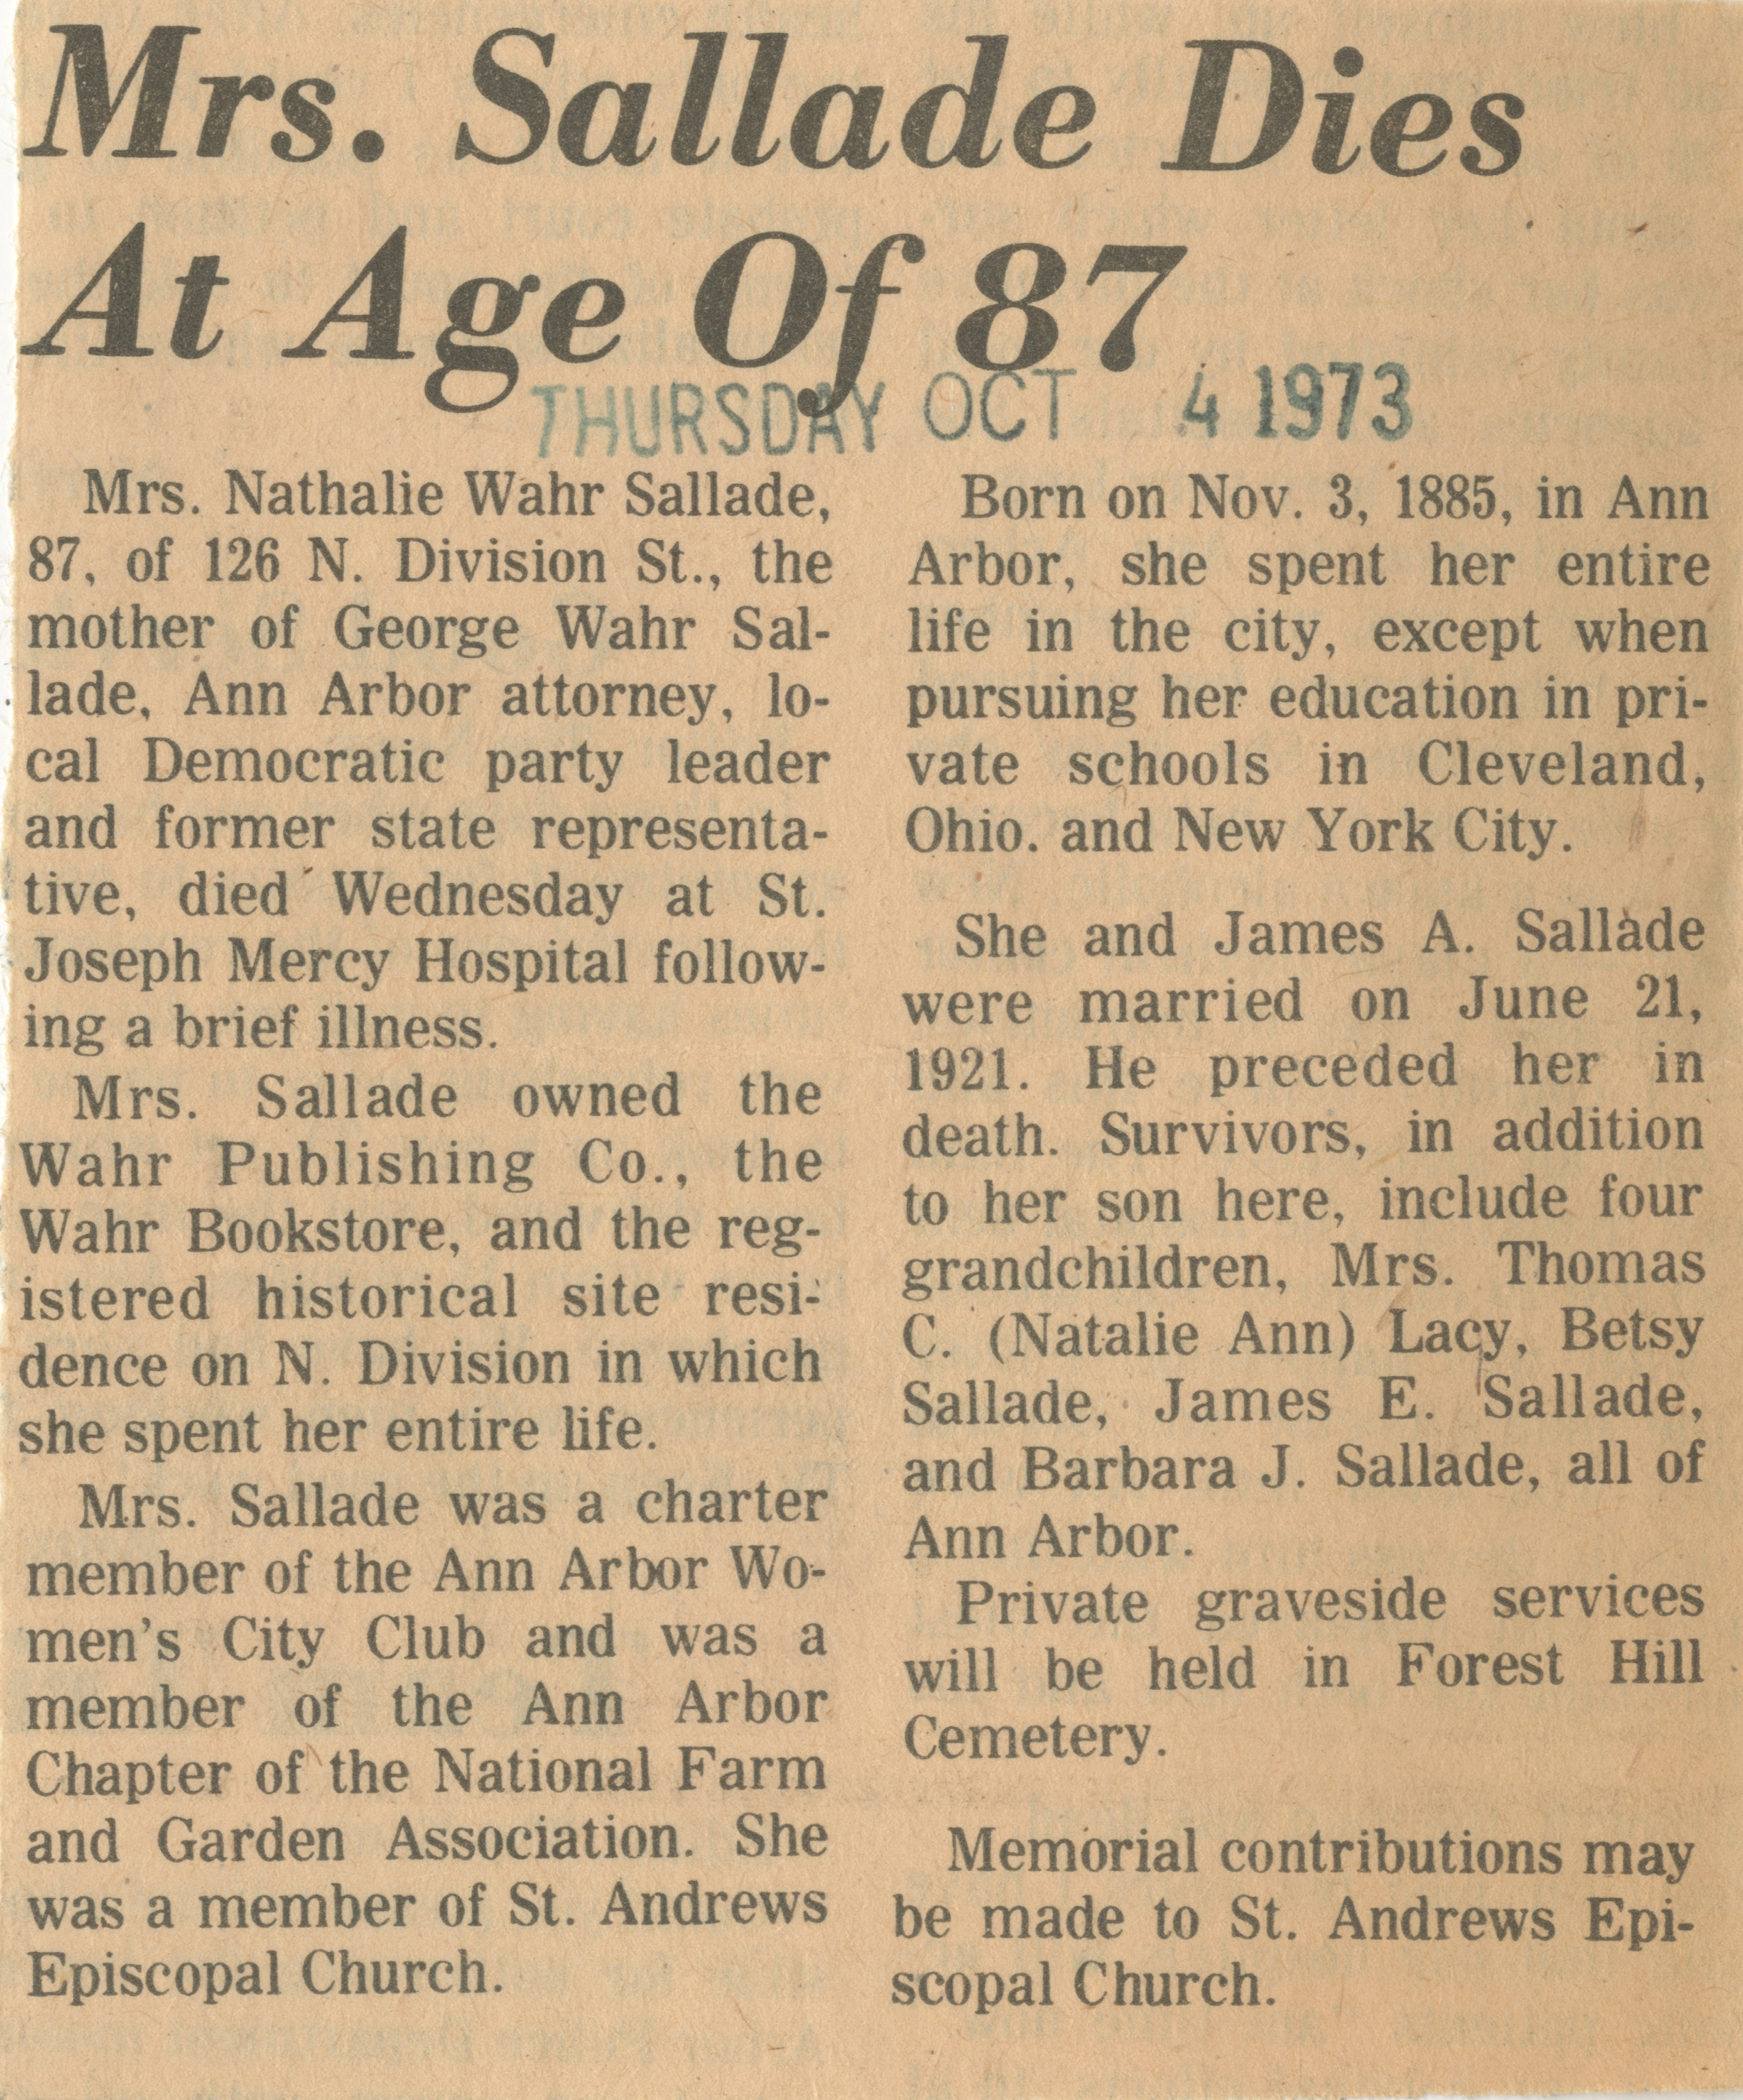 Mrs. Sallade Dies At Age Of 87 image